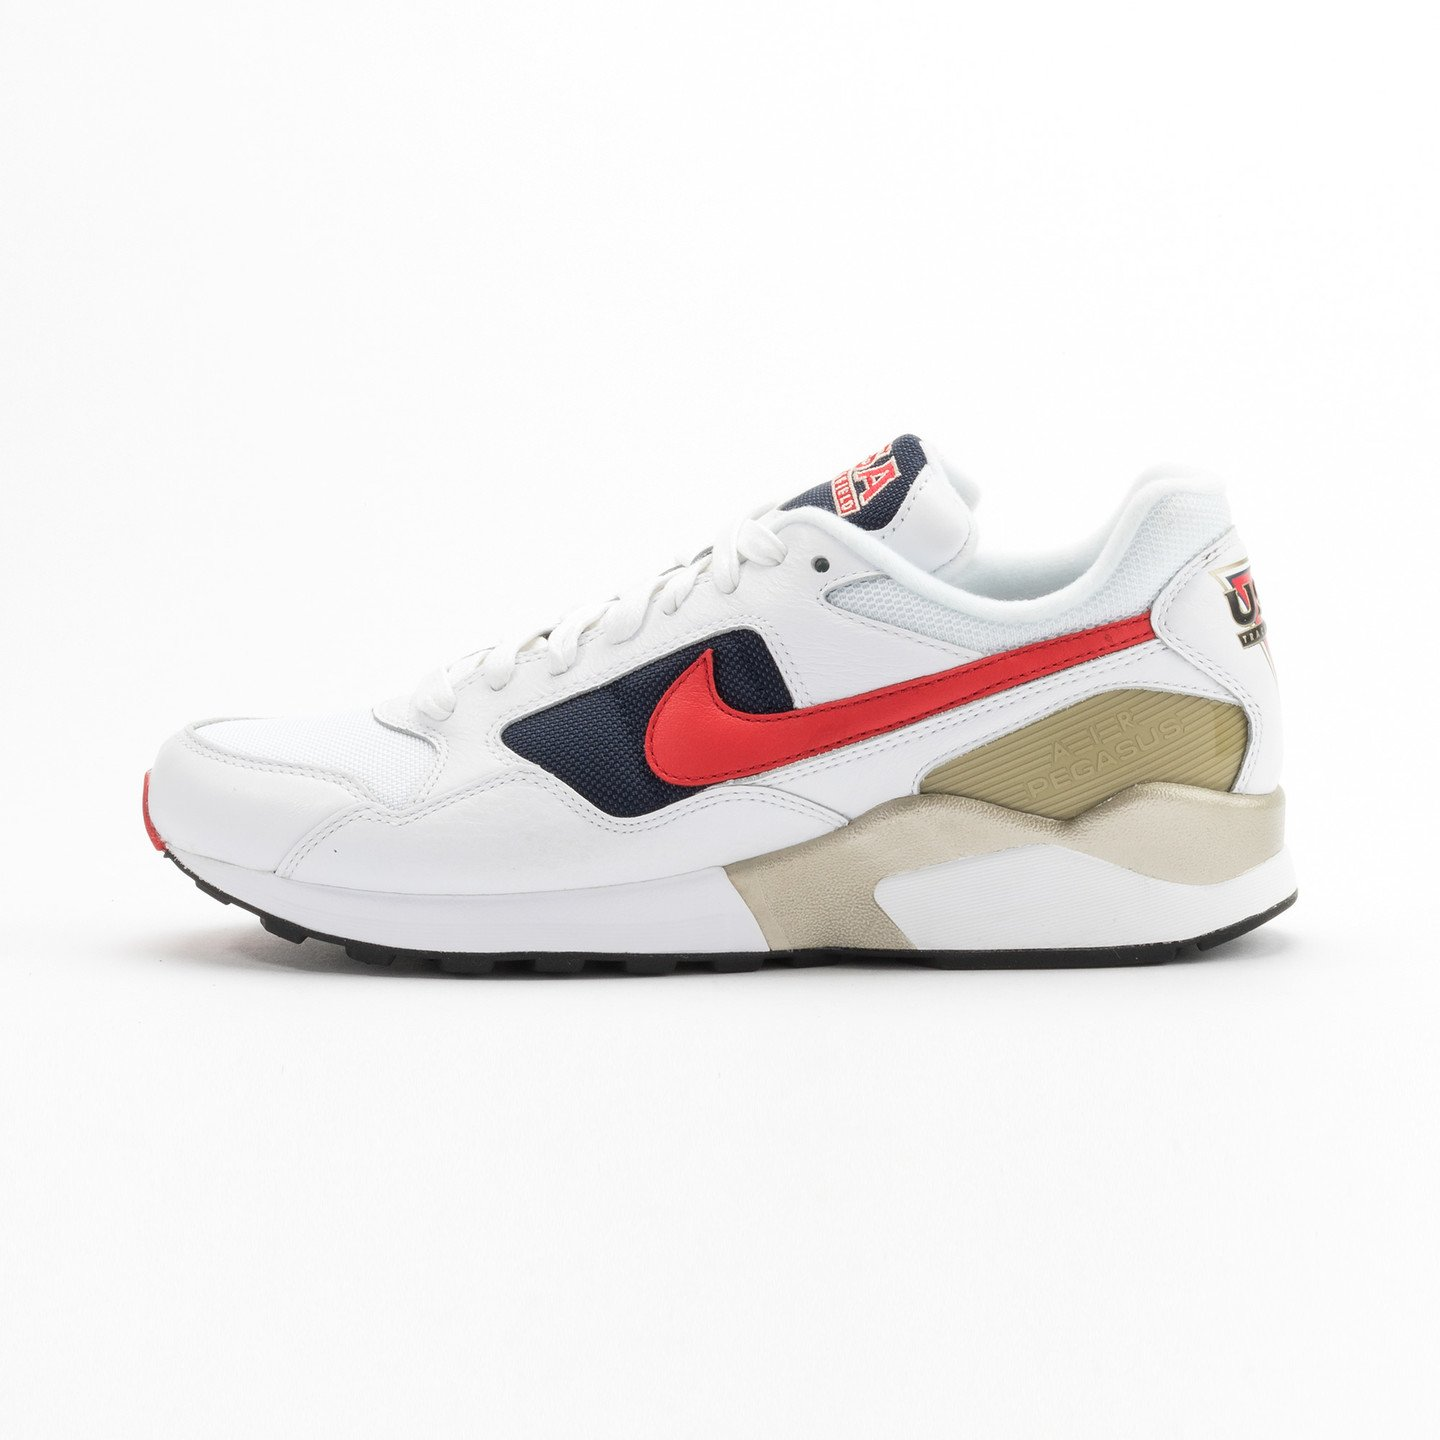 Nike Air Pegasus ´92 Premium White / University Red / Midnight Navy 844964-100-45.5